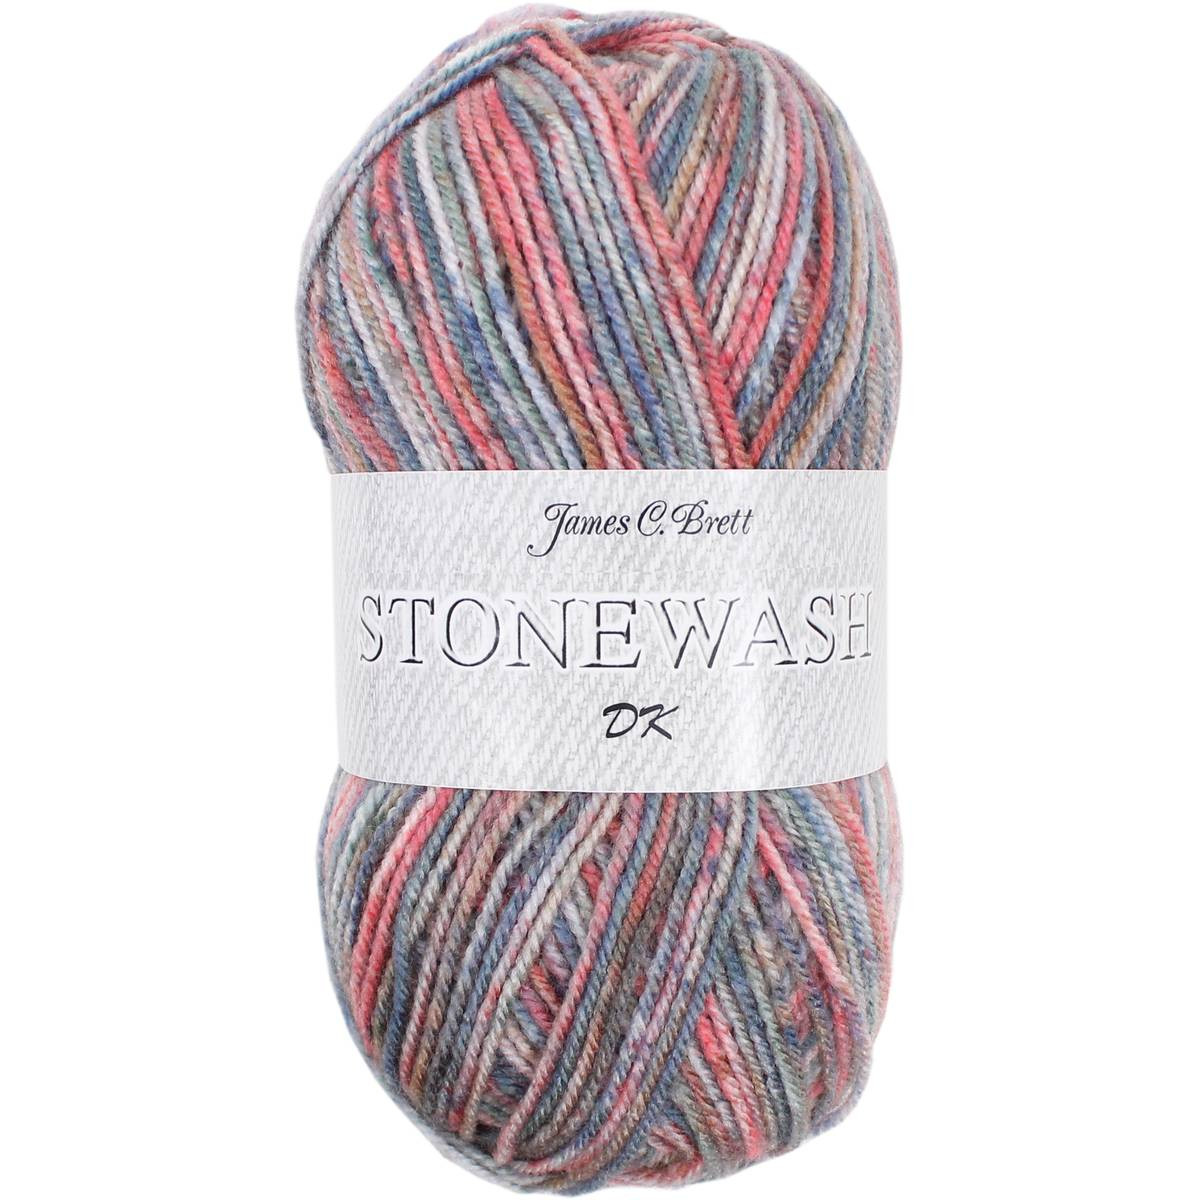 James C Brett Denim And Red Stonewash Dk Yarn 100G